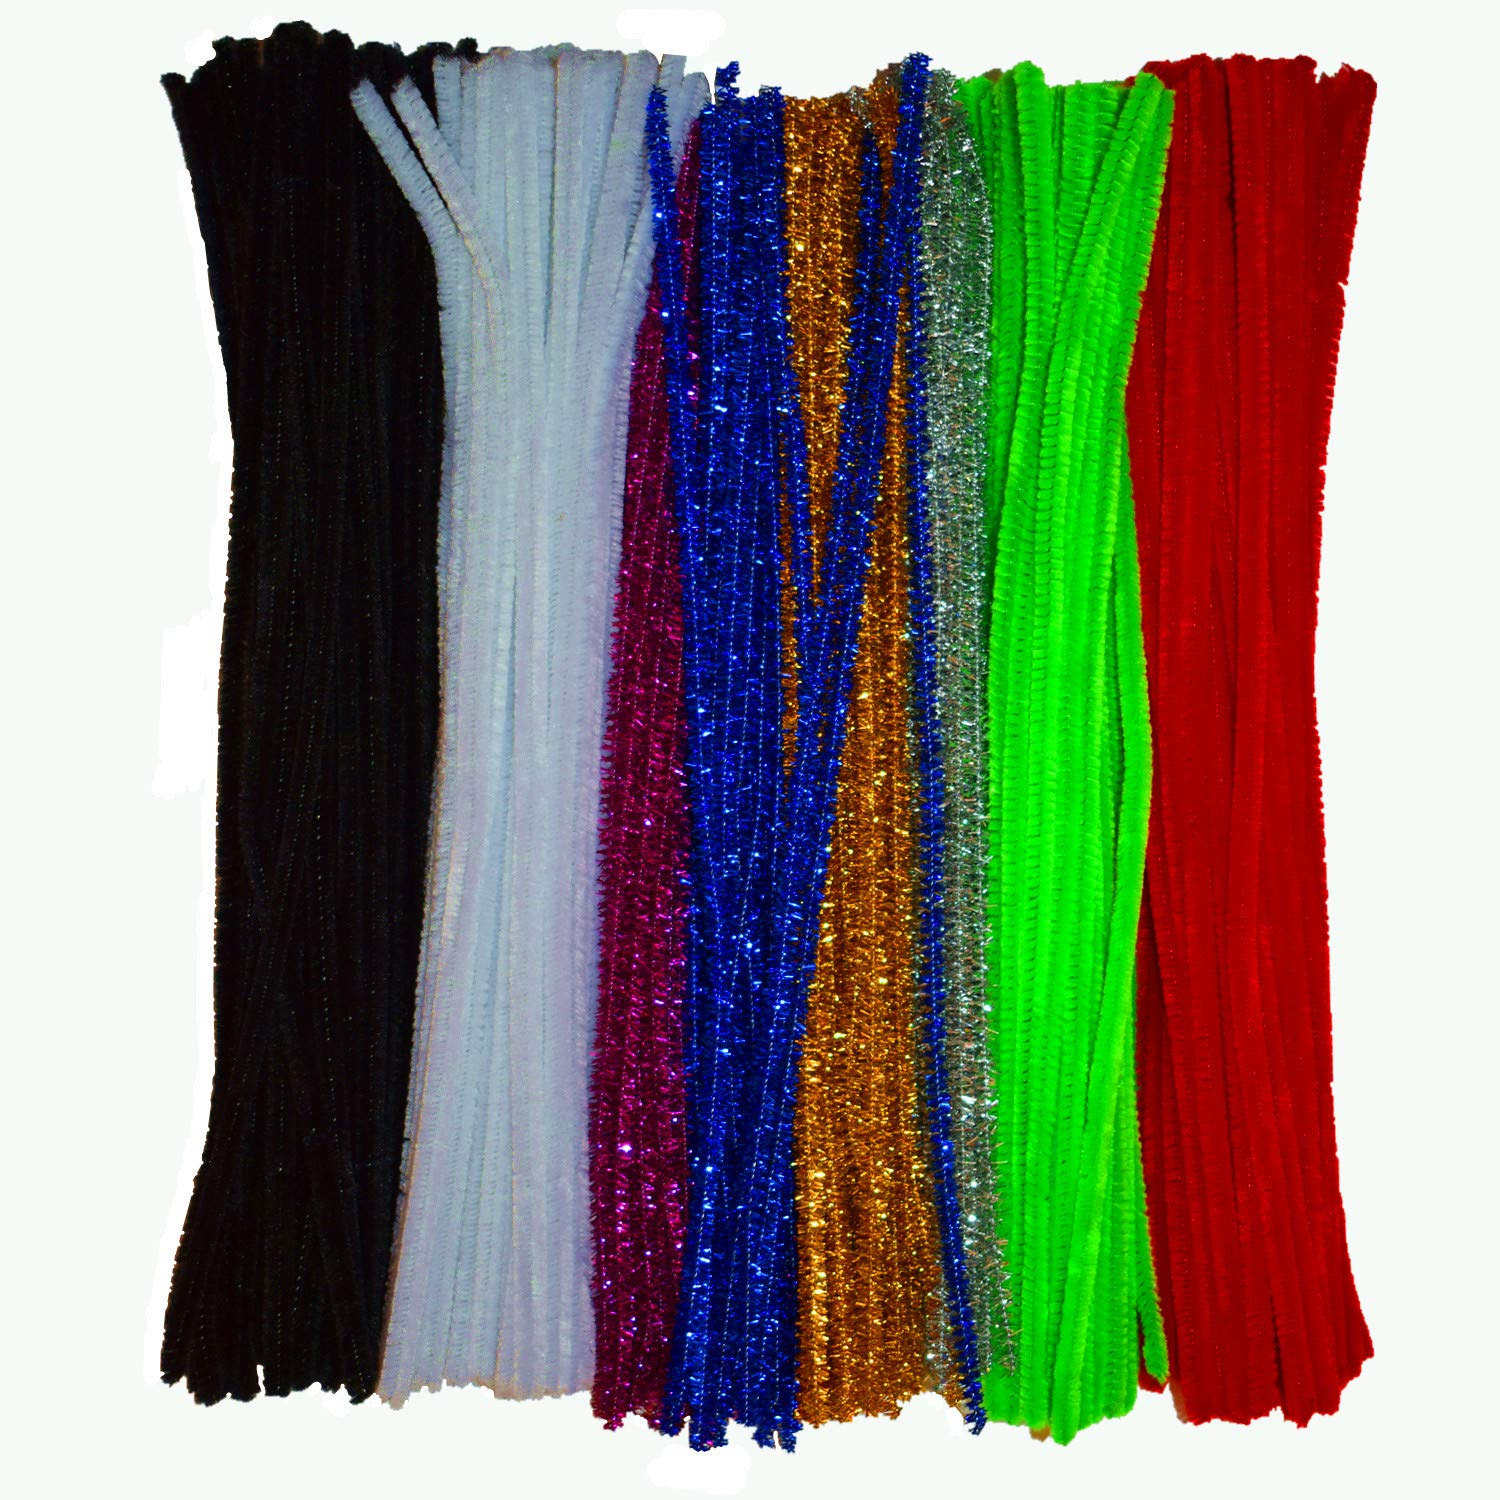 Chenille Stems Colors Pipe Cleaners 300 Piece for DIY Art Creative Craft(6 mm x 12 Inch)